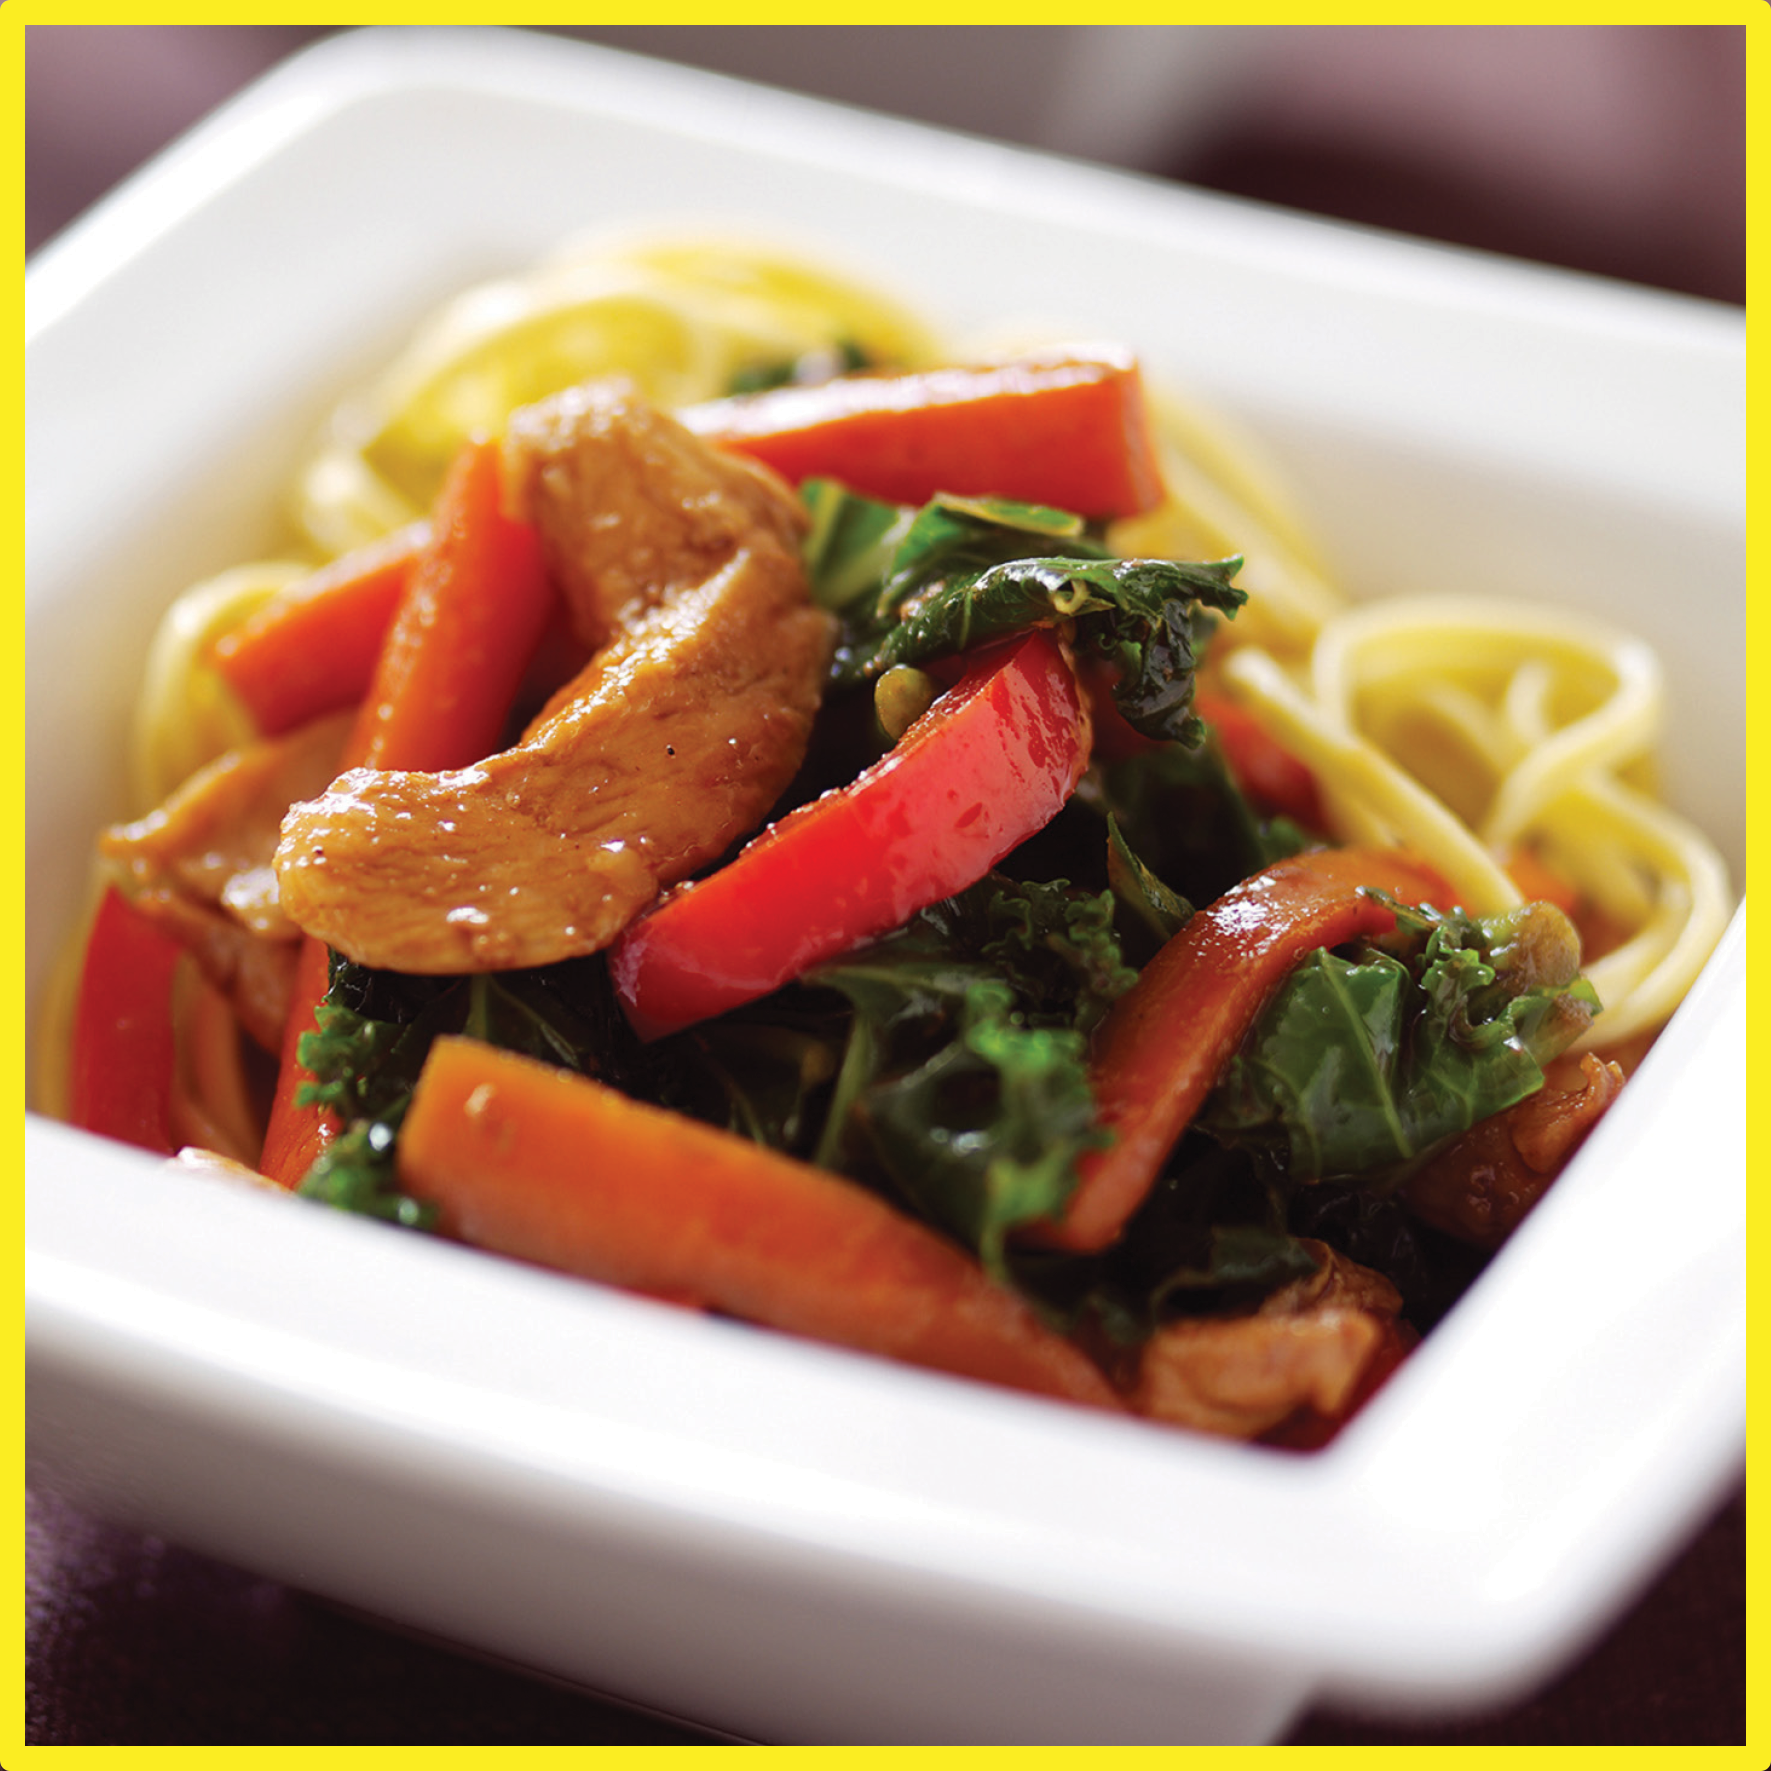 chicken, kale and ginger stir fry